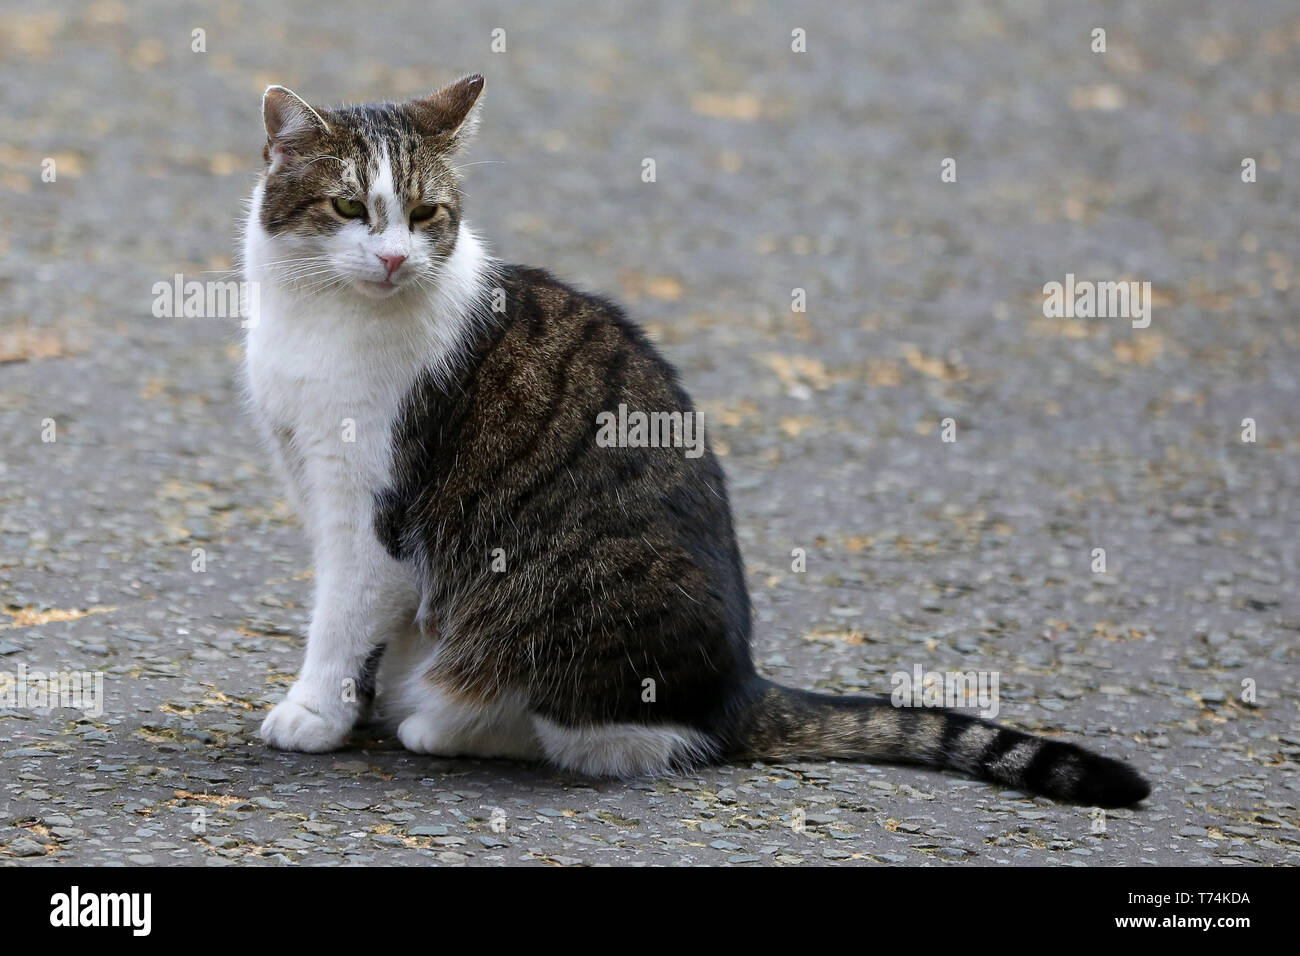 London, UK. 1st May, 2019. Larry, the 10 Downing Street cat and Chief Mouser to the Cabinet Office is seen in Downing Street just before the British Prime Minister, Theresa May departs for the House of Commons for the Prime Minister's Question Time. Credit: Dinendra Haria/SOPA Images/ZUMA Wire/Alamy Live News Stock Photo